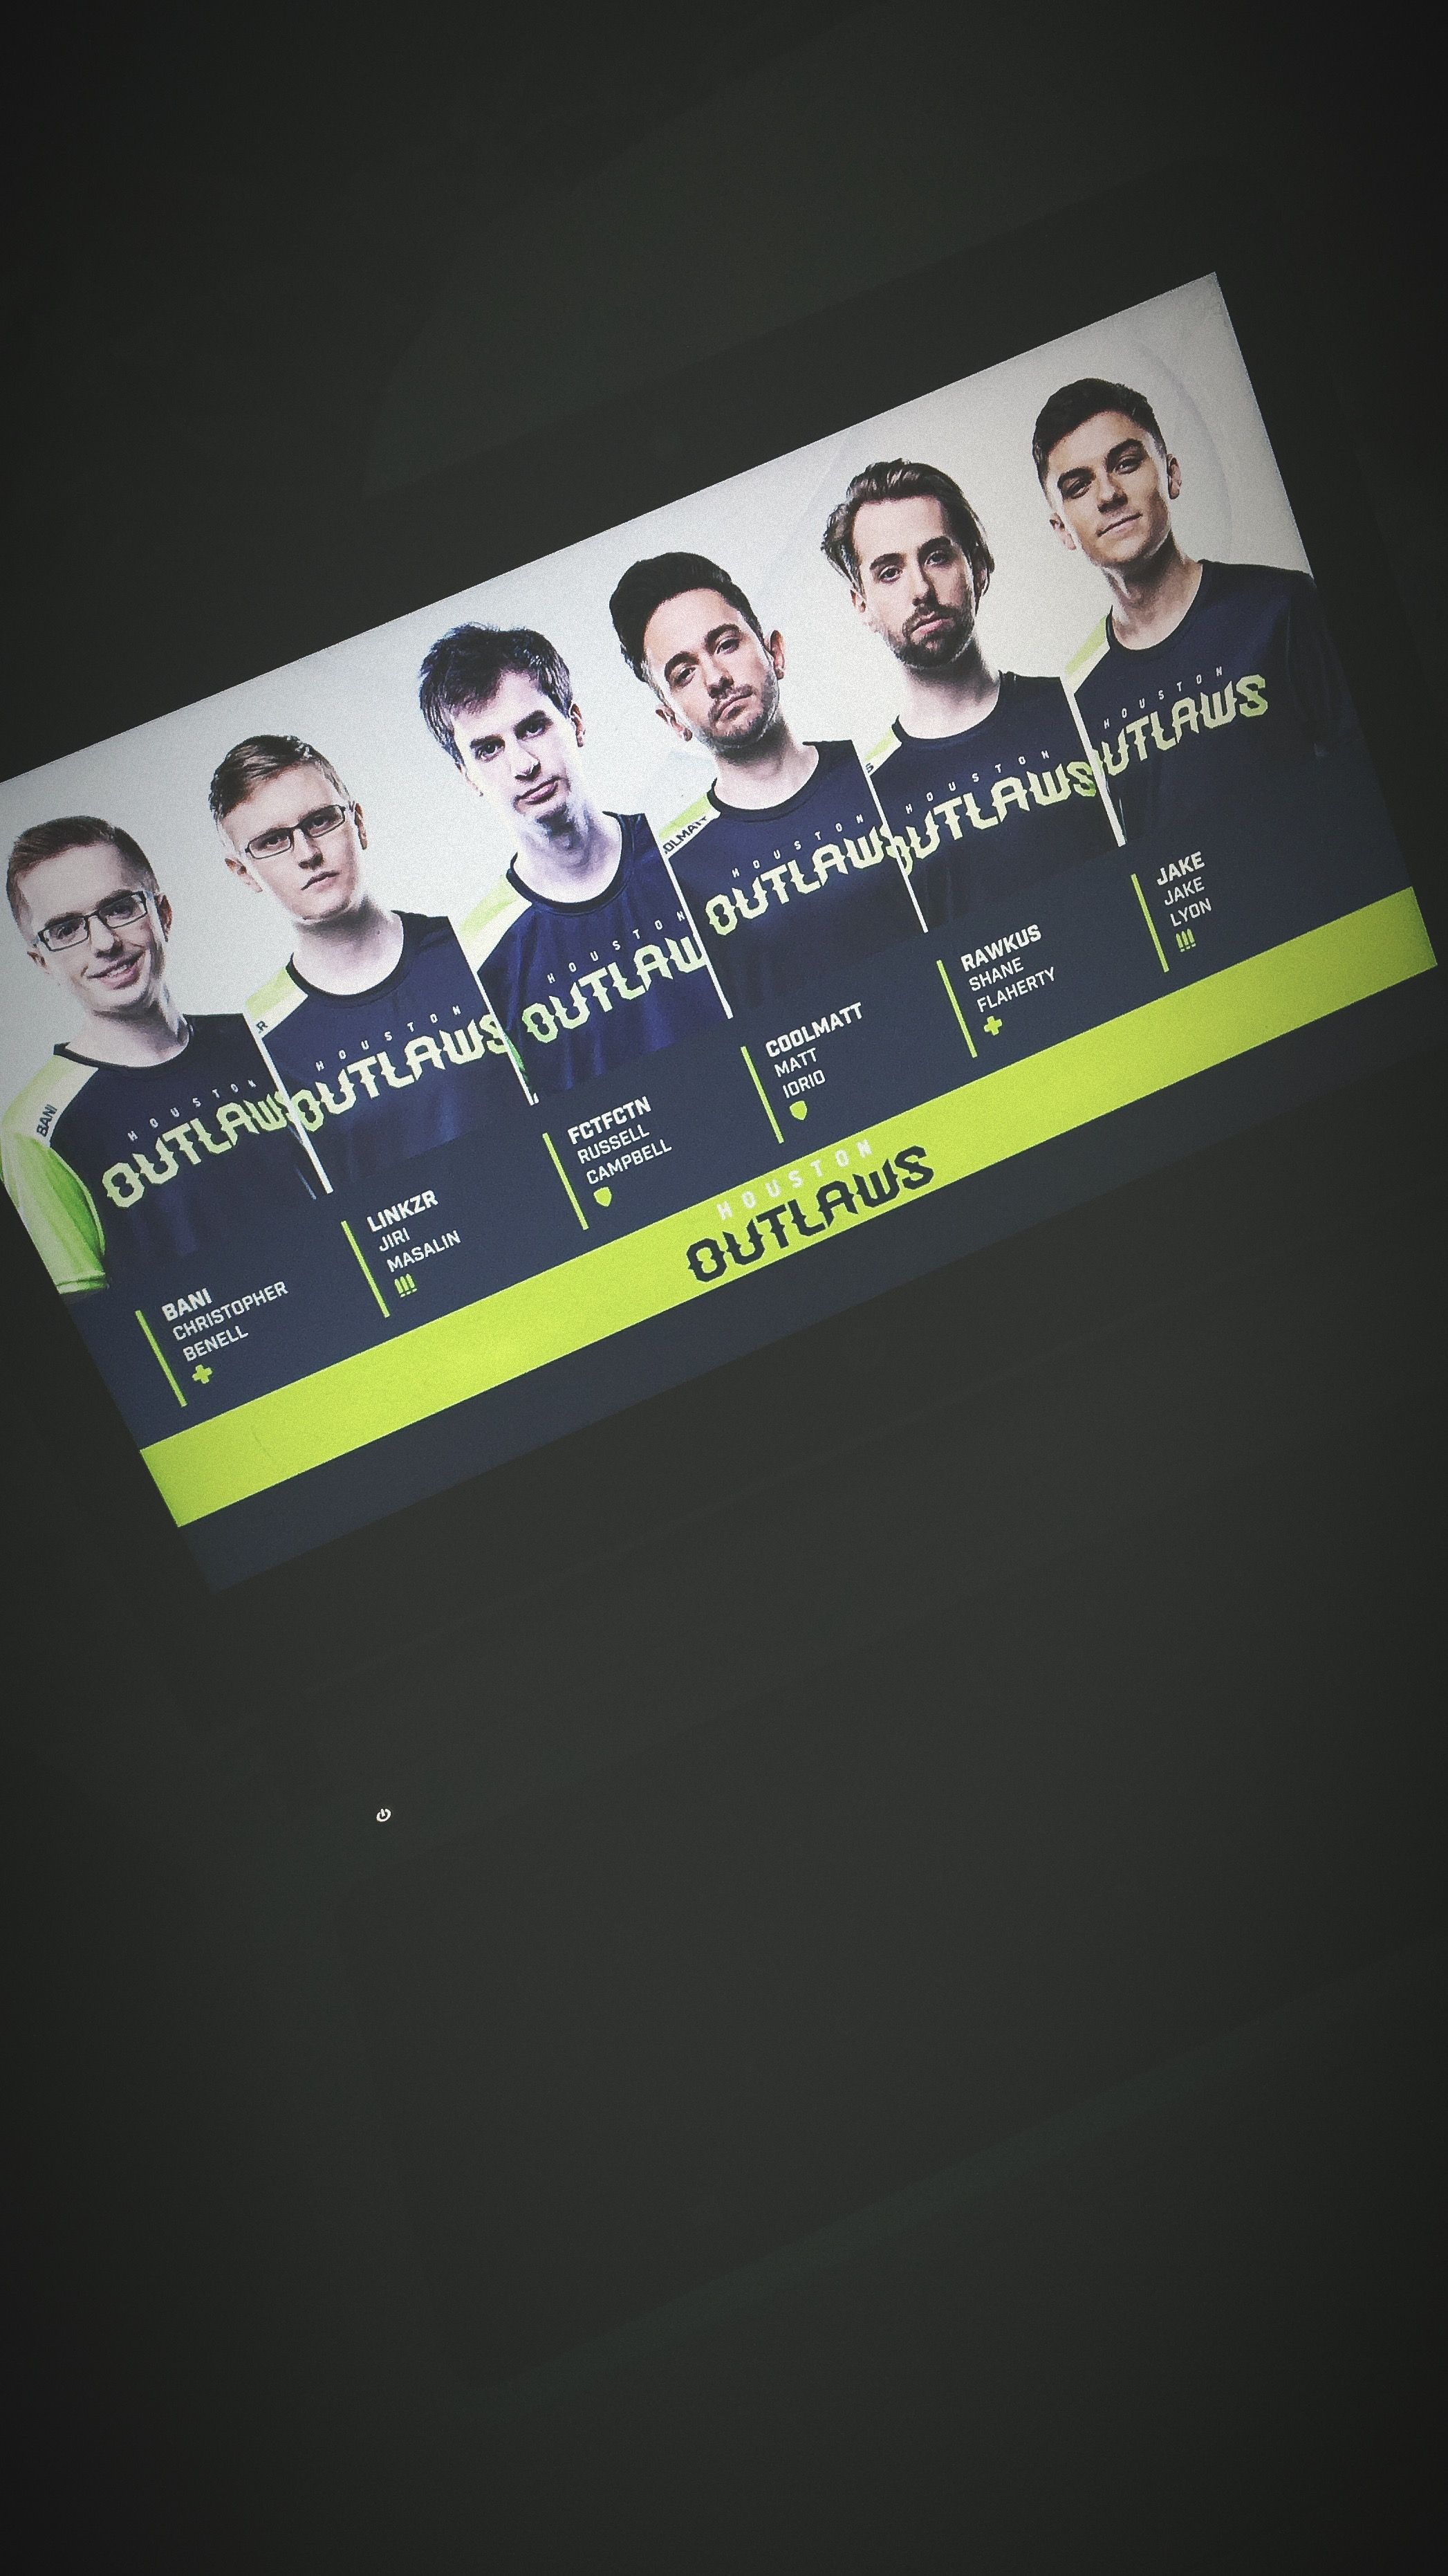 Pin By Des On Houston Outlaws Overwatch Houston Movie Posters